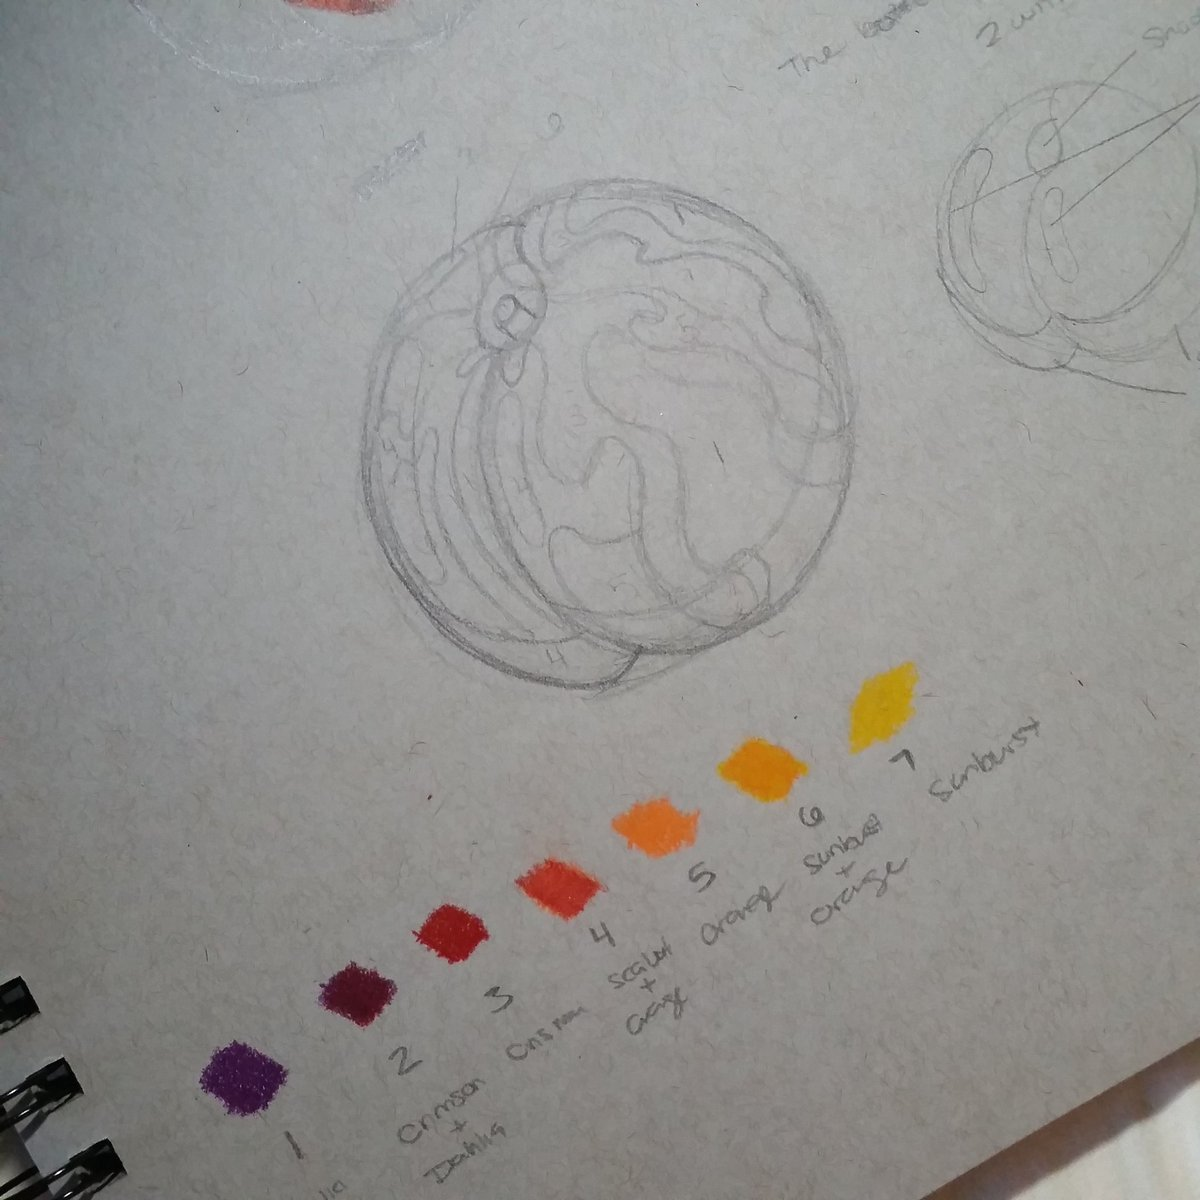 Currently mapping out where my colors are going #WIP #art #practicepic.twitter.com/3s5I4BTOdx